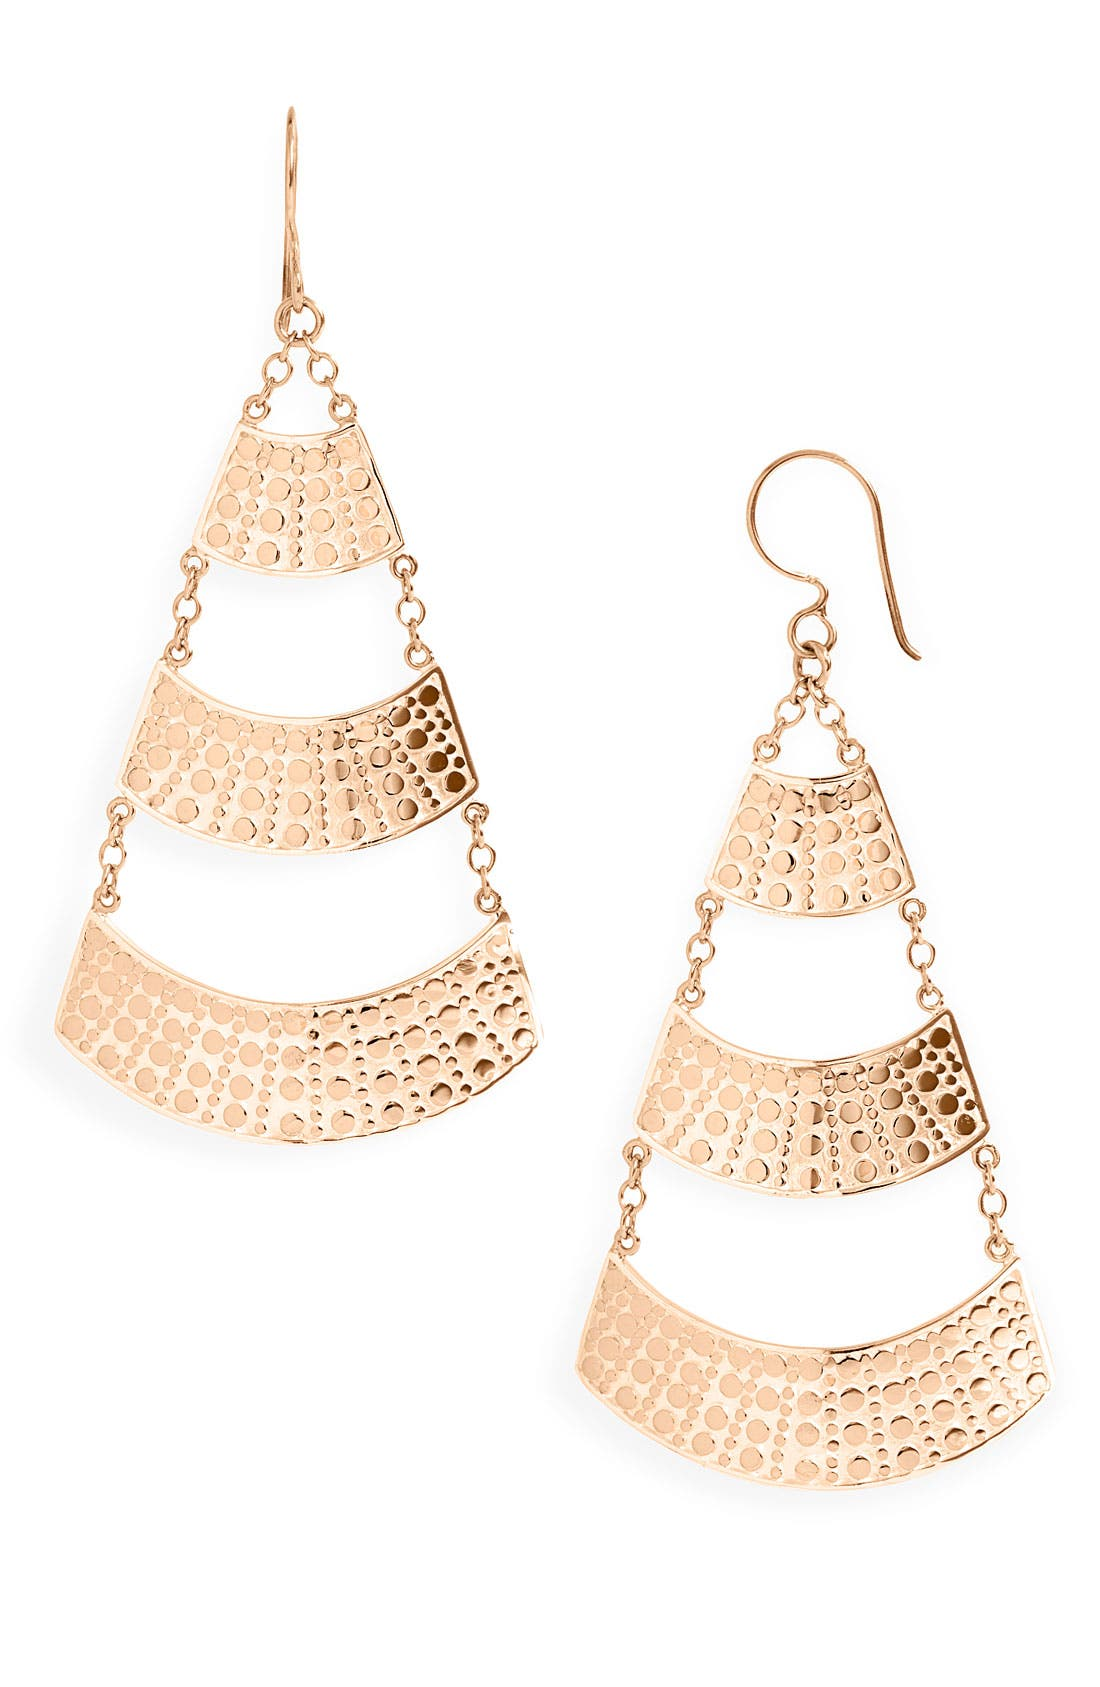 Main Image - Anna Beck 'Flores' Large Pyramid Earrings